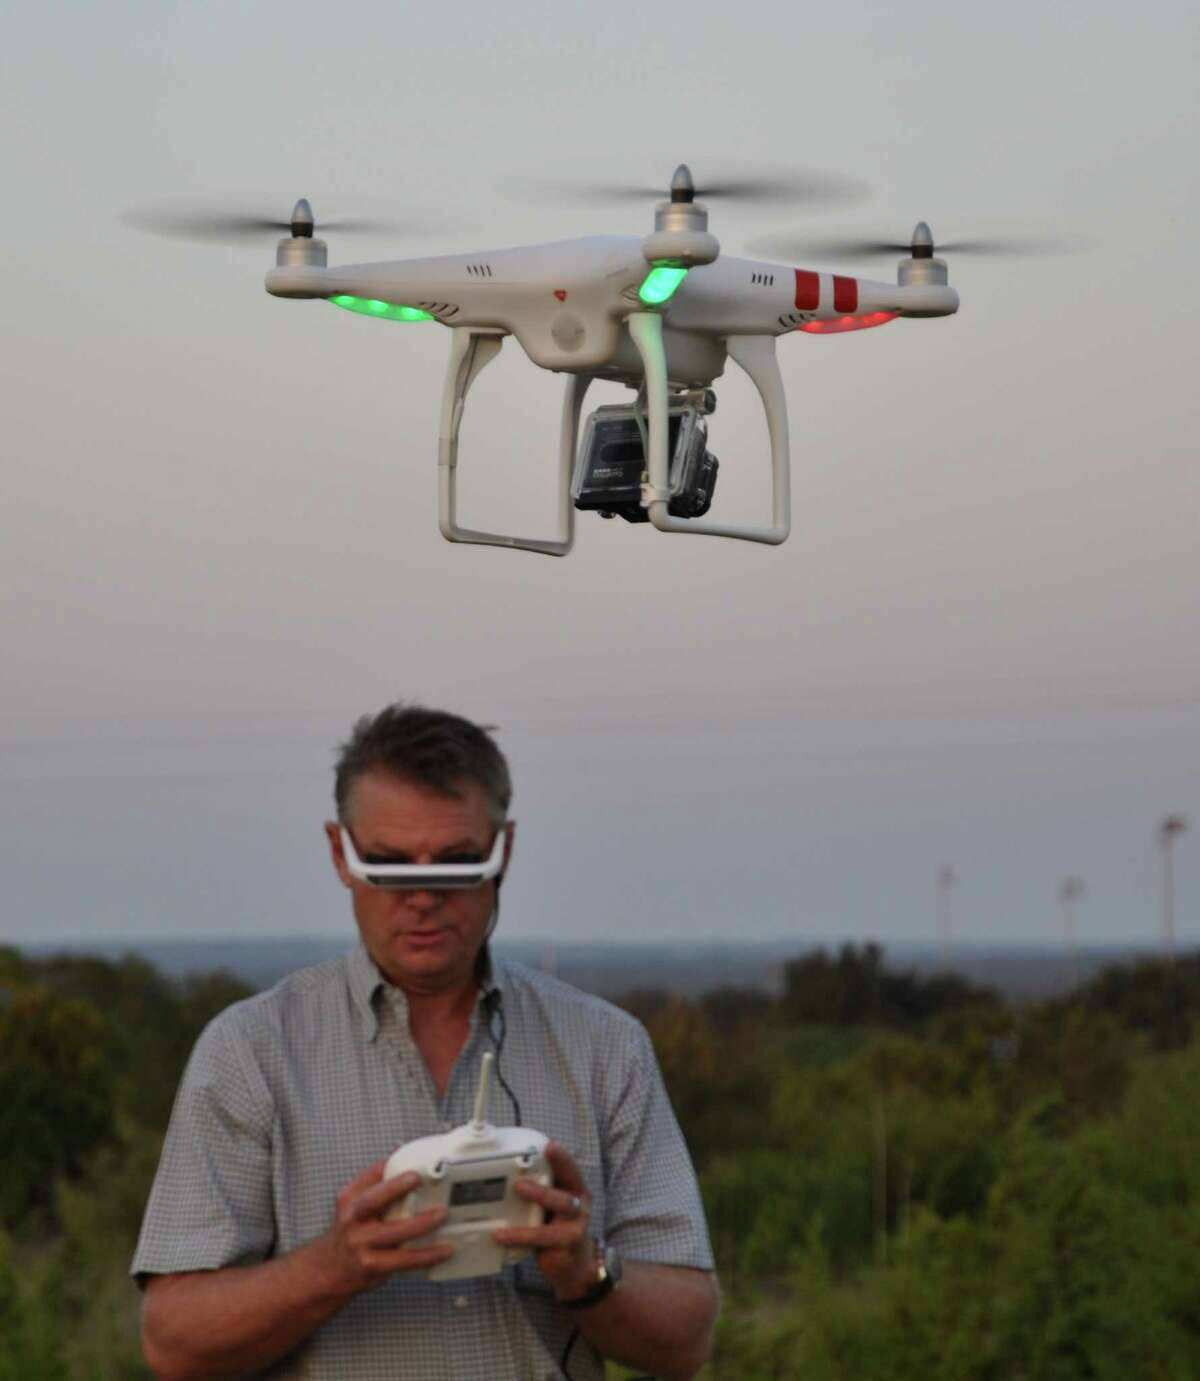 Steve Klindworth, CEO of UAVDirect, operates a drone copter he sells for $979.95 along with camera and goggles. The system allows the operator to fly the aircraft while seeing the view from the aircraft in real time.